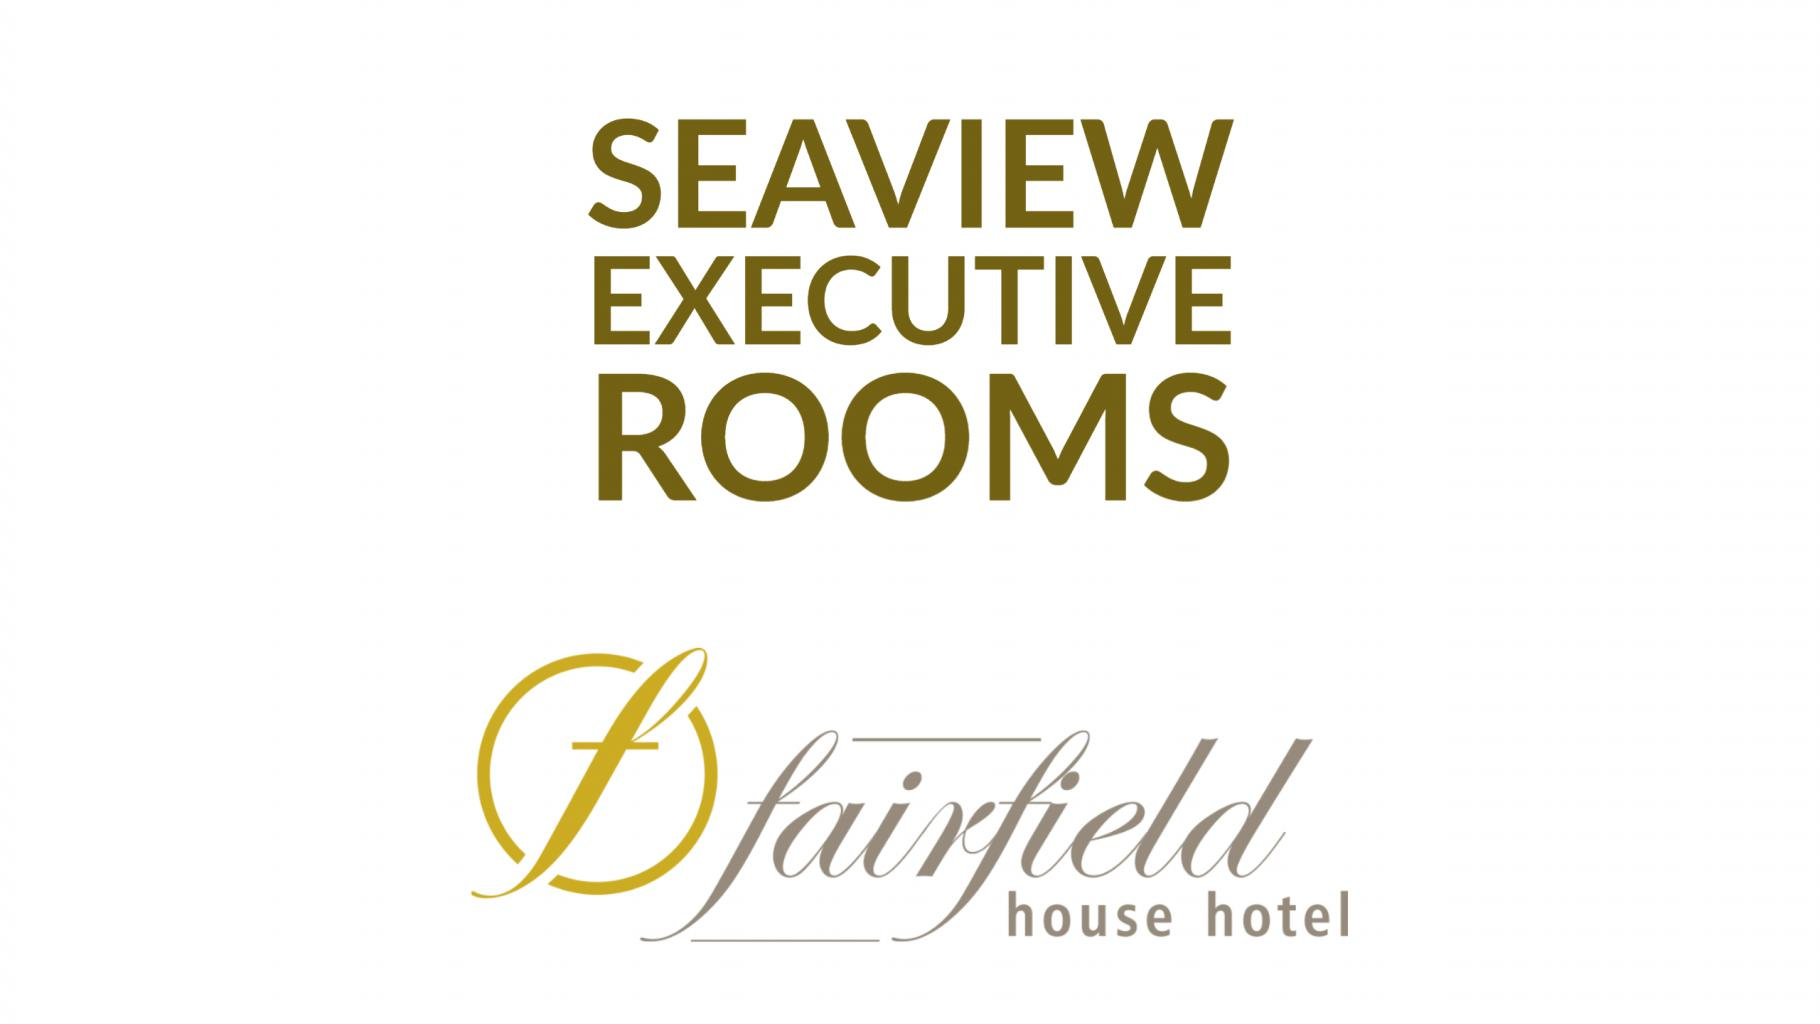 Our Sea View Executive offers large modern and stylish rooms with ample desk space and free wireless connection ensuring you remain connected.